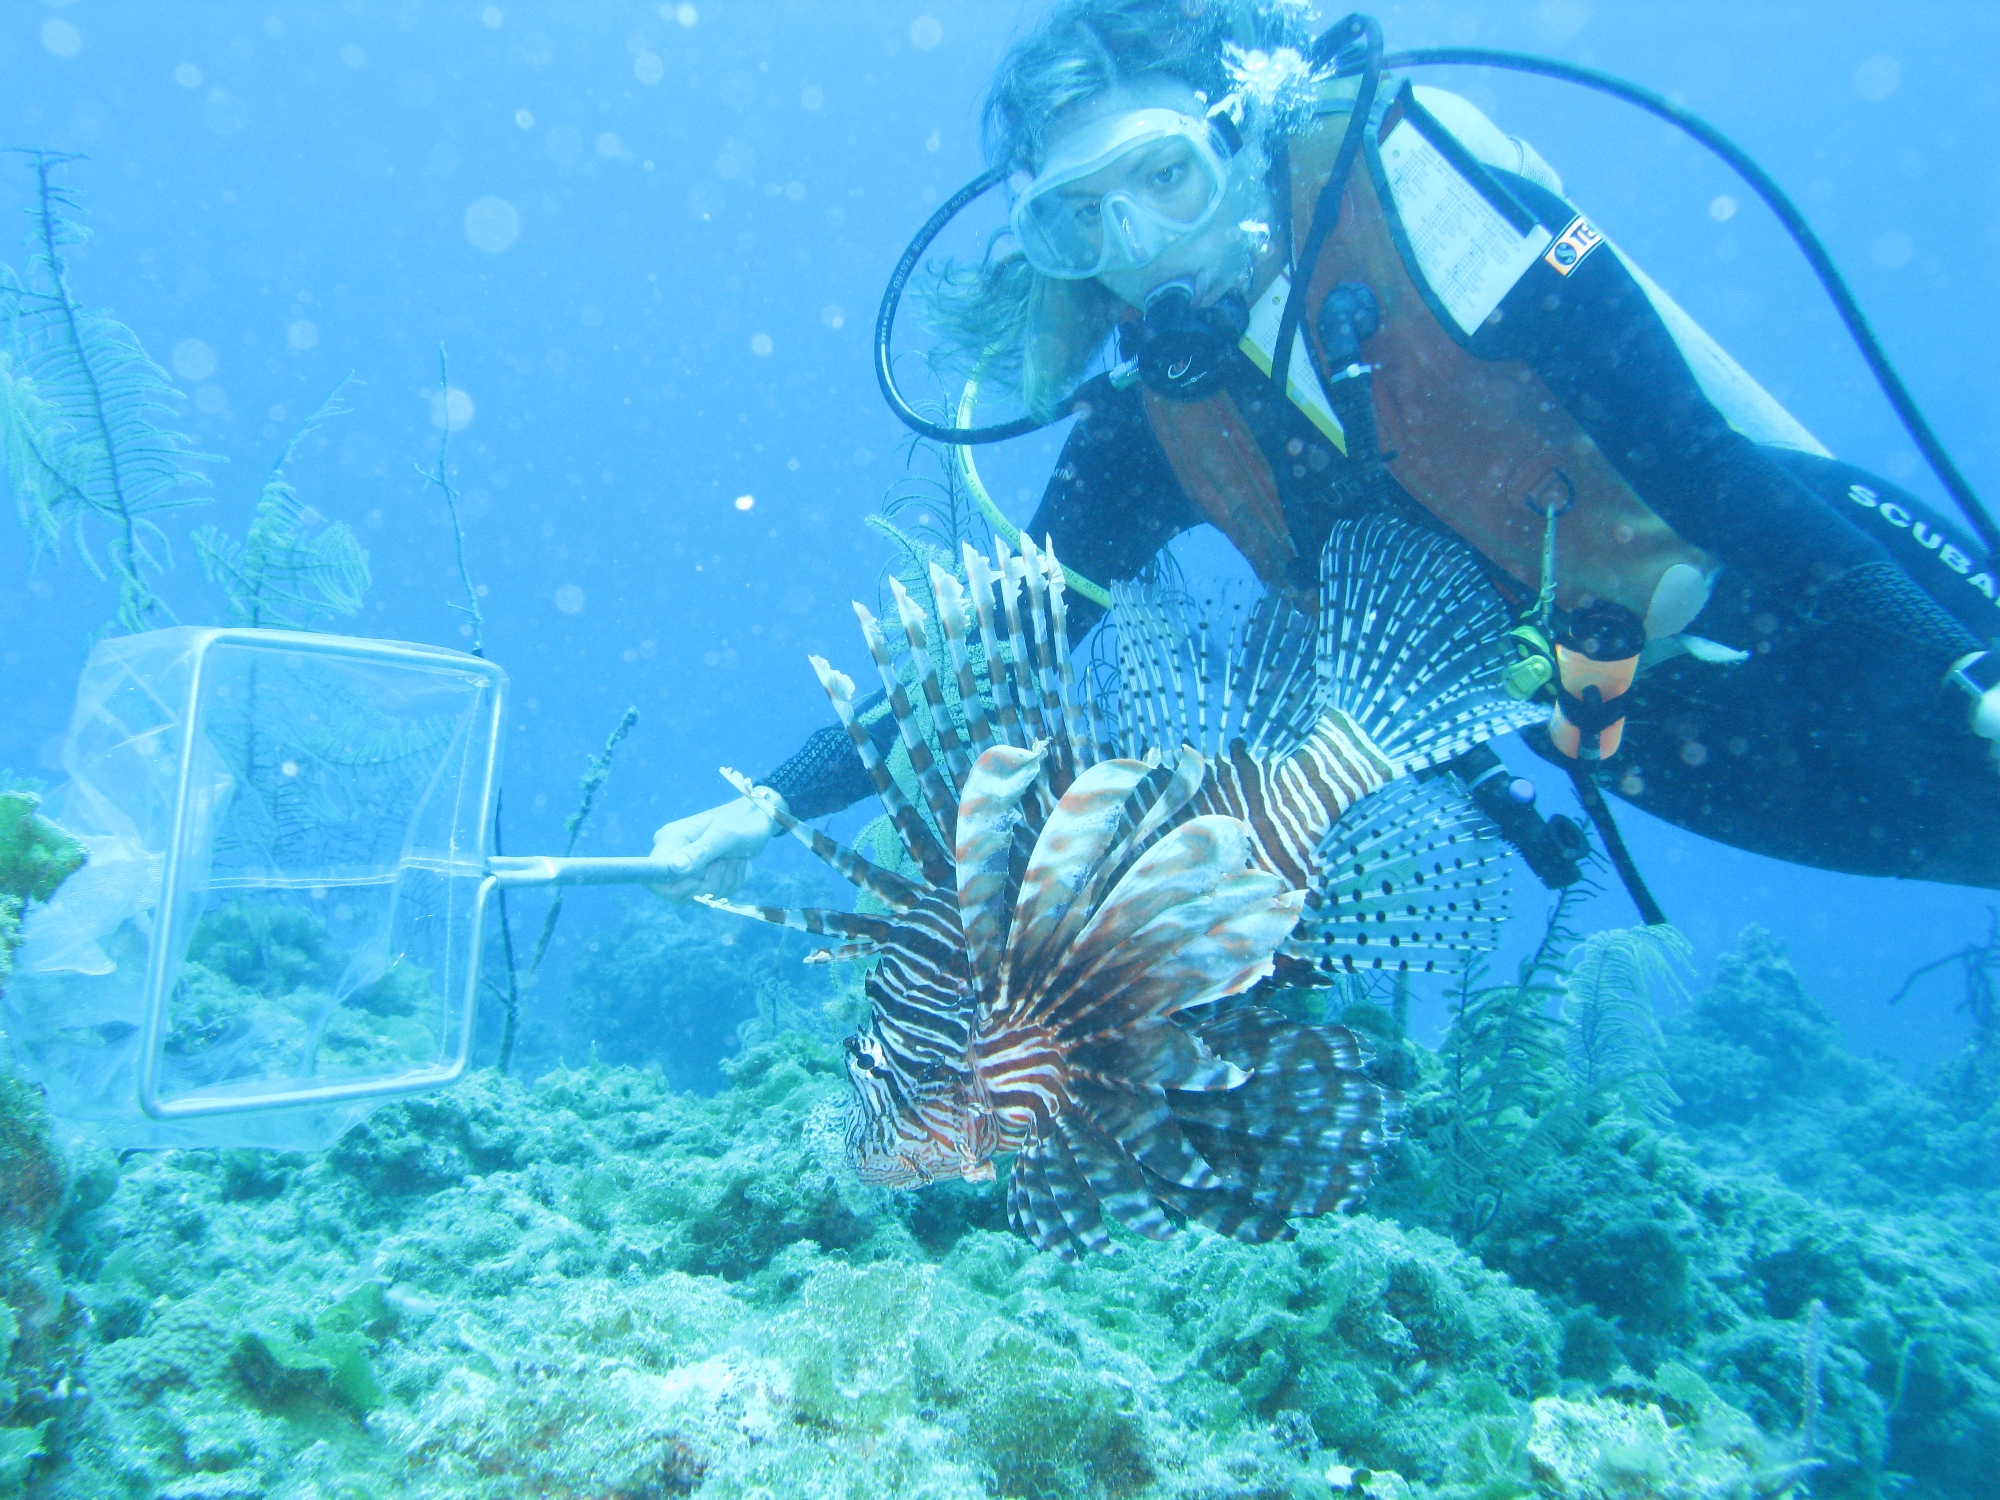 A photo of catching lionfish by REEF's Lad Akins